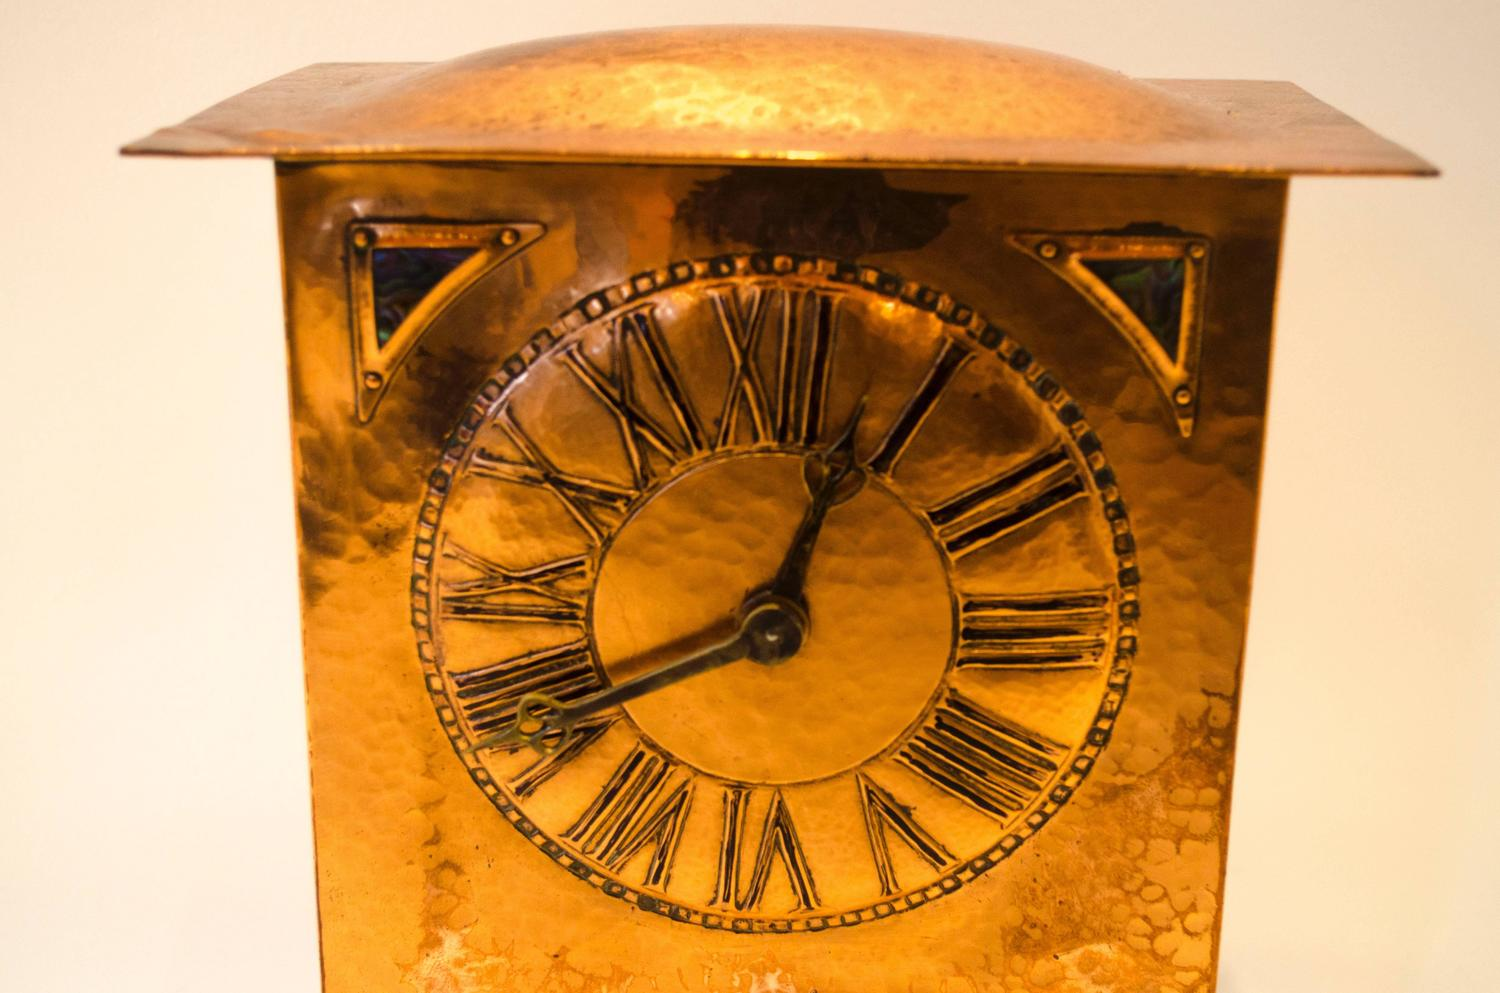 Arts and crafts copper clock by collins and co for sale at for Arts and crafts clocks for sale